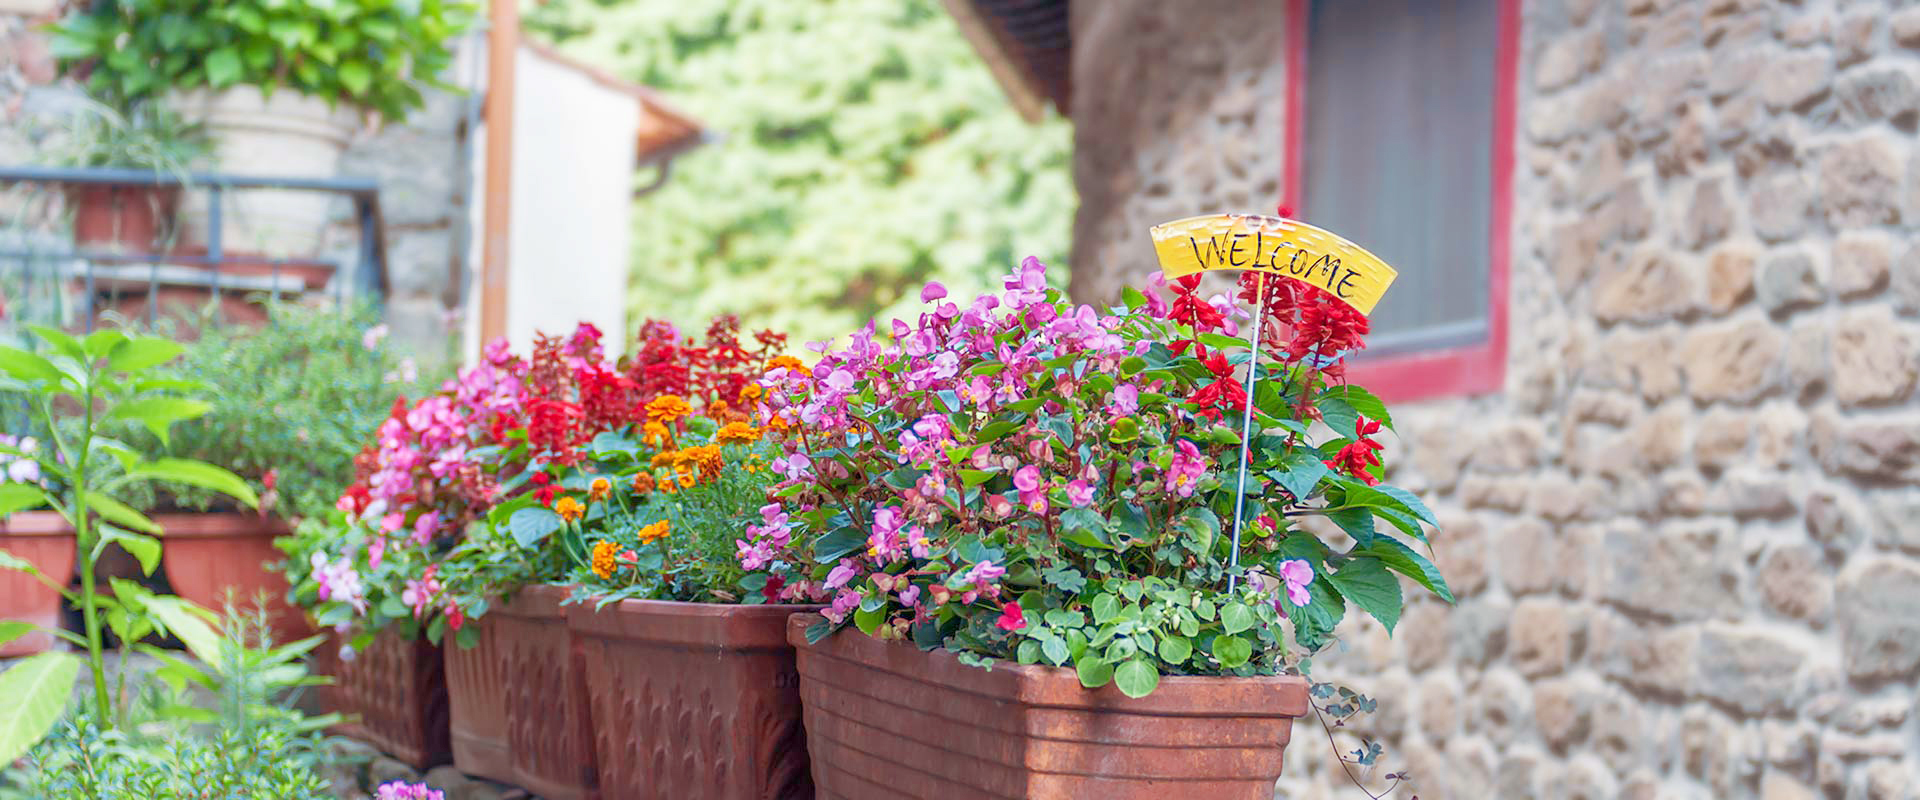 Tuscany Villages Flowers